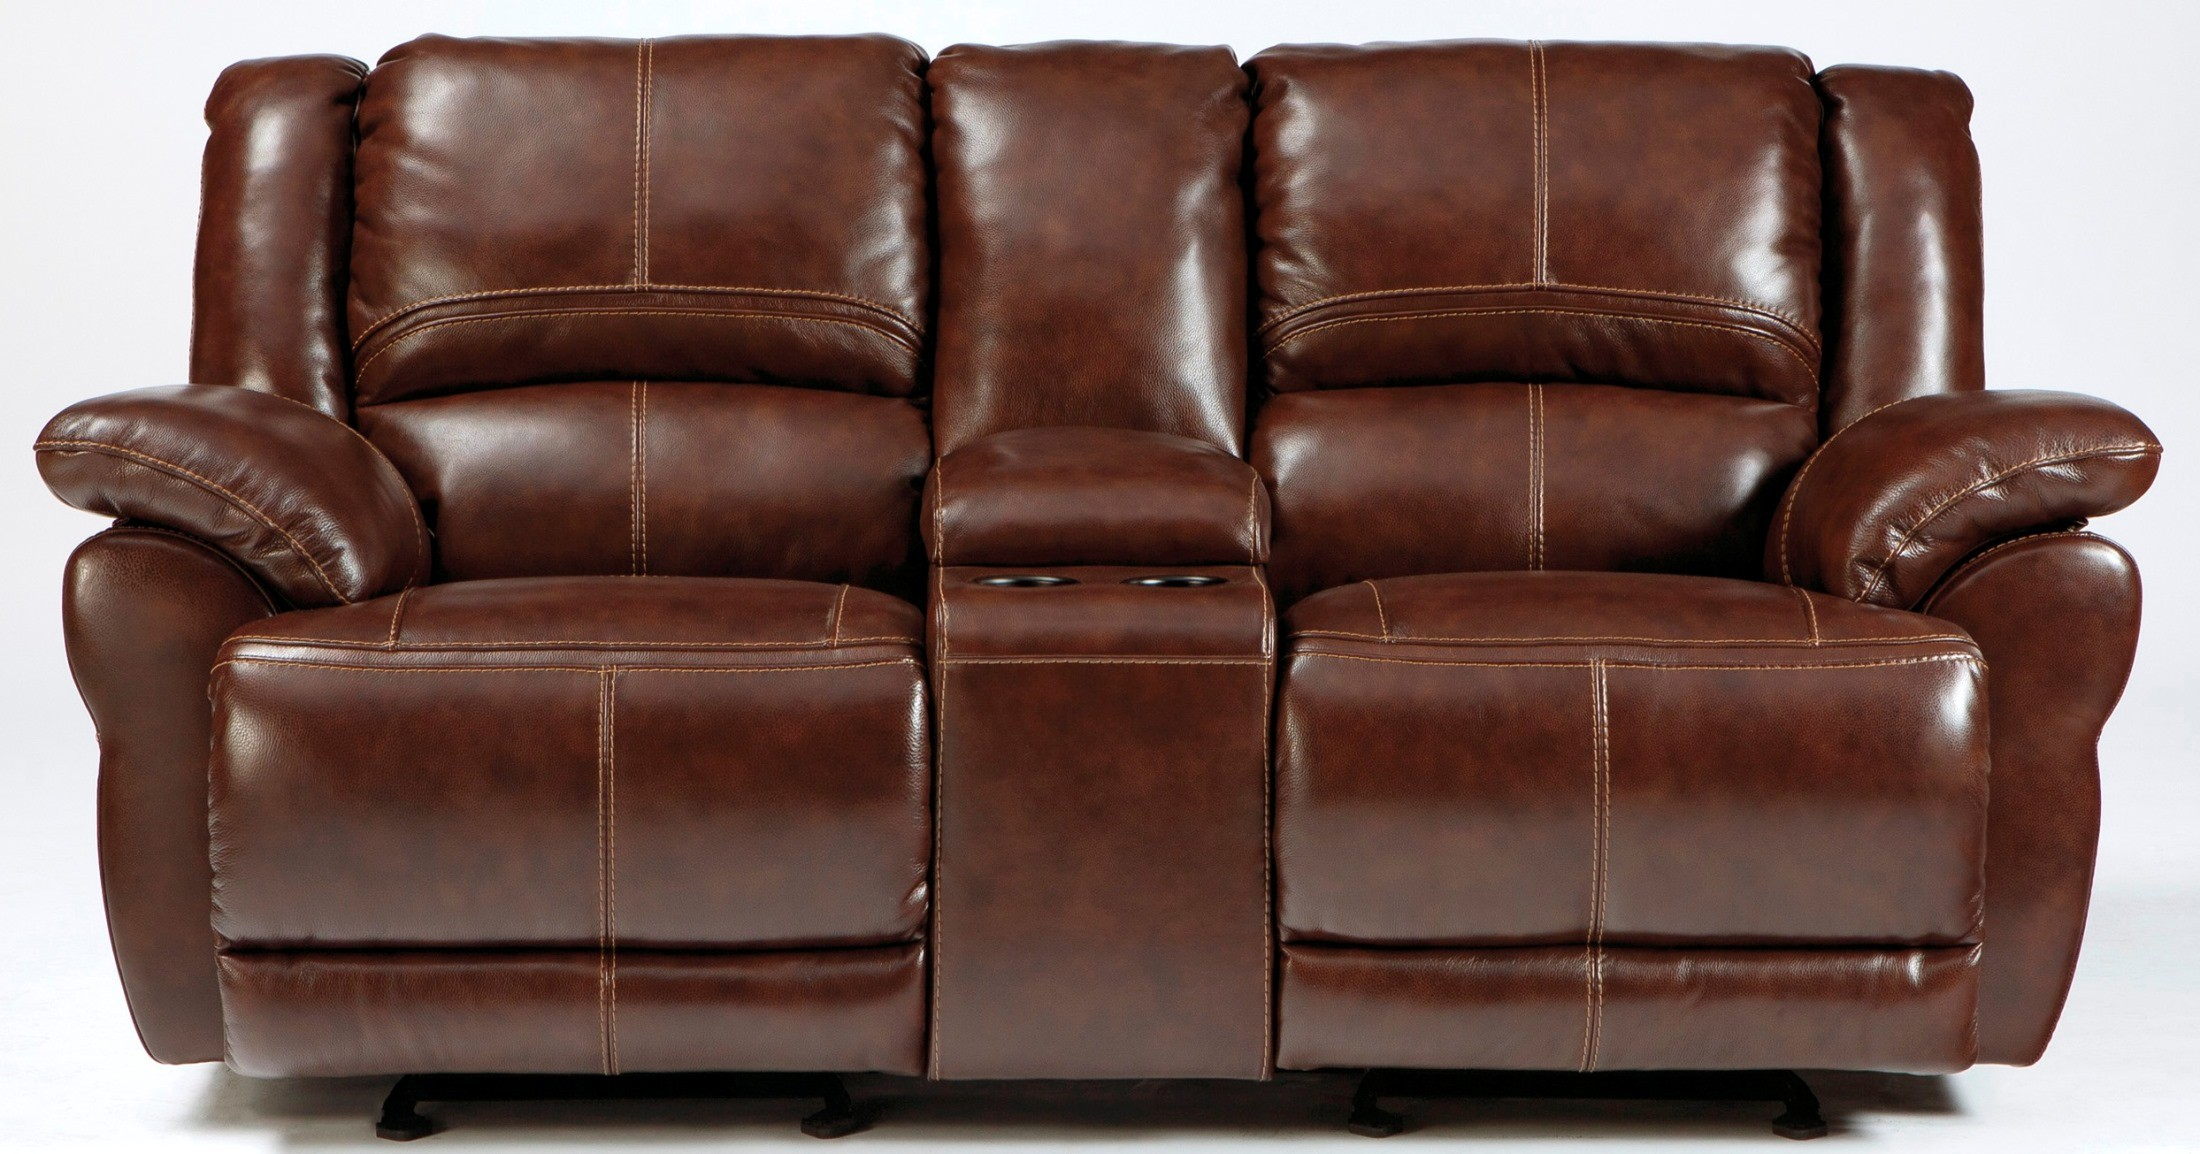 Lenoris Coffee Glider Reclining Loveseat With Console From Ashley U9890143 Coleman Furniture